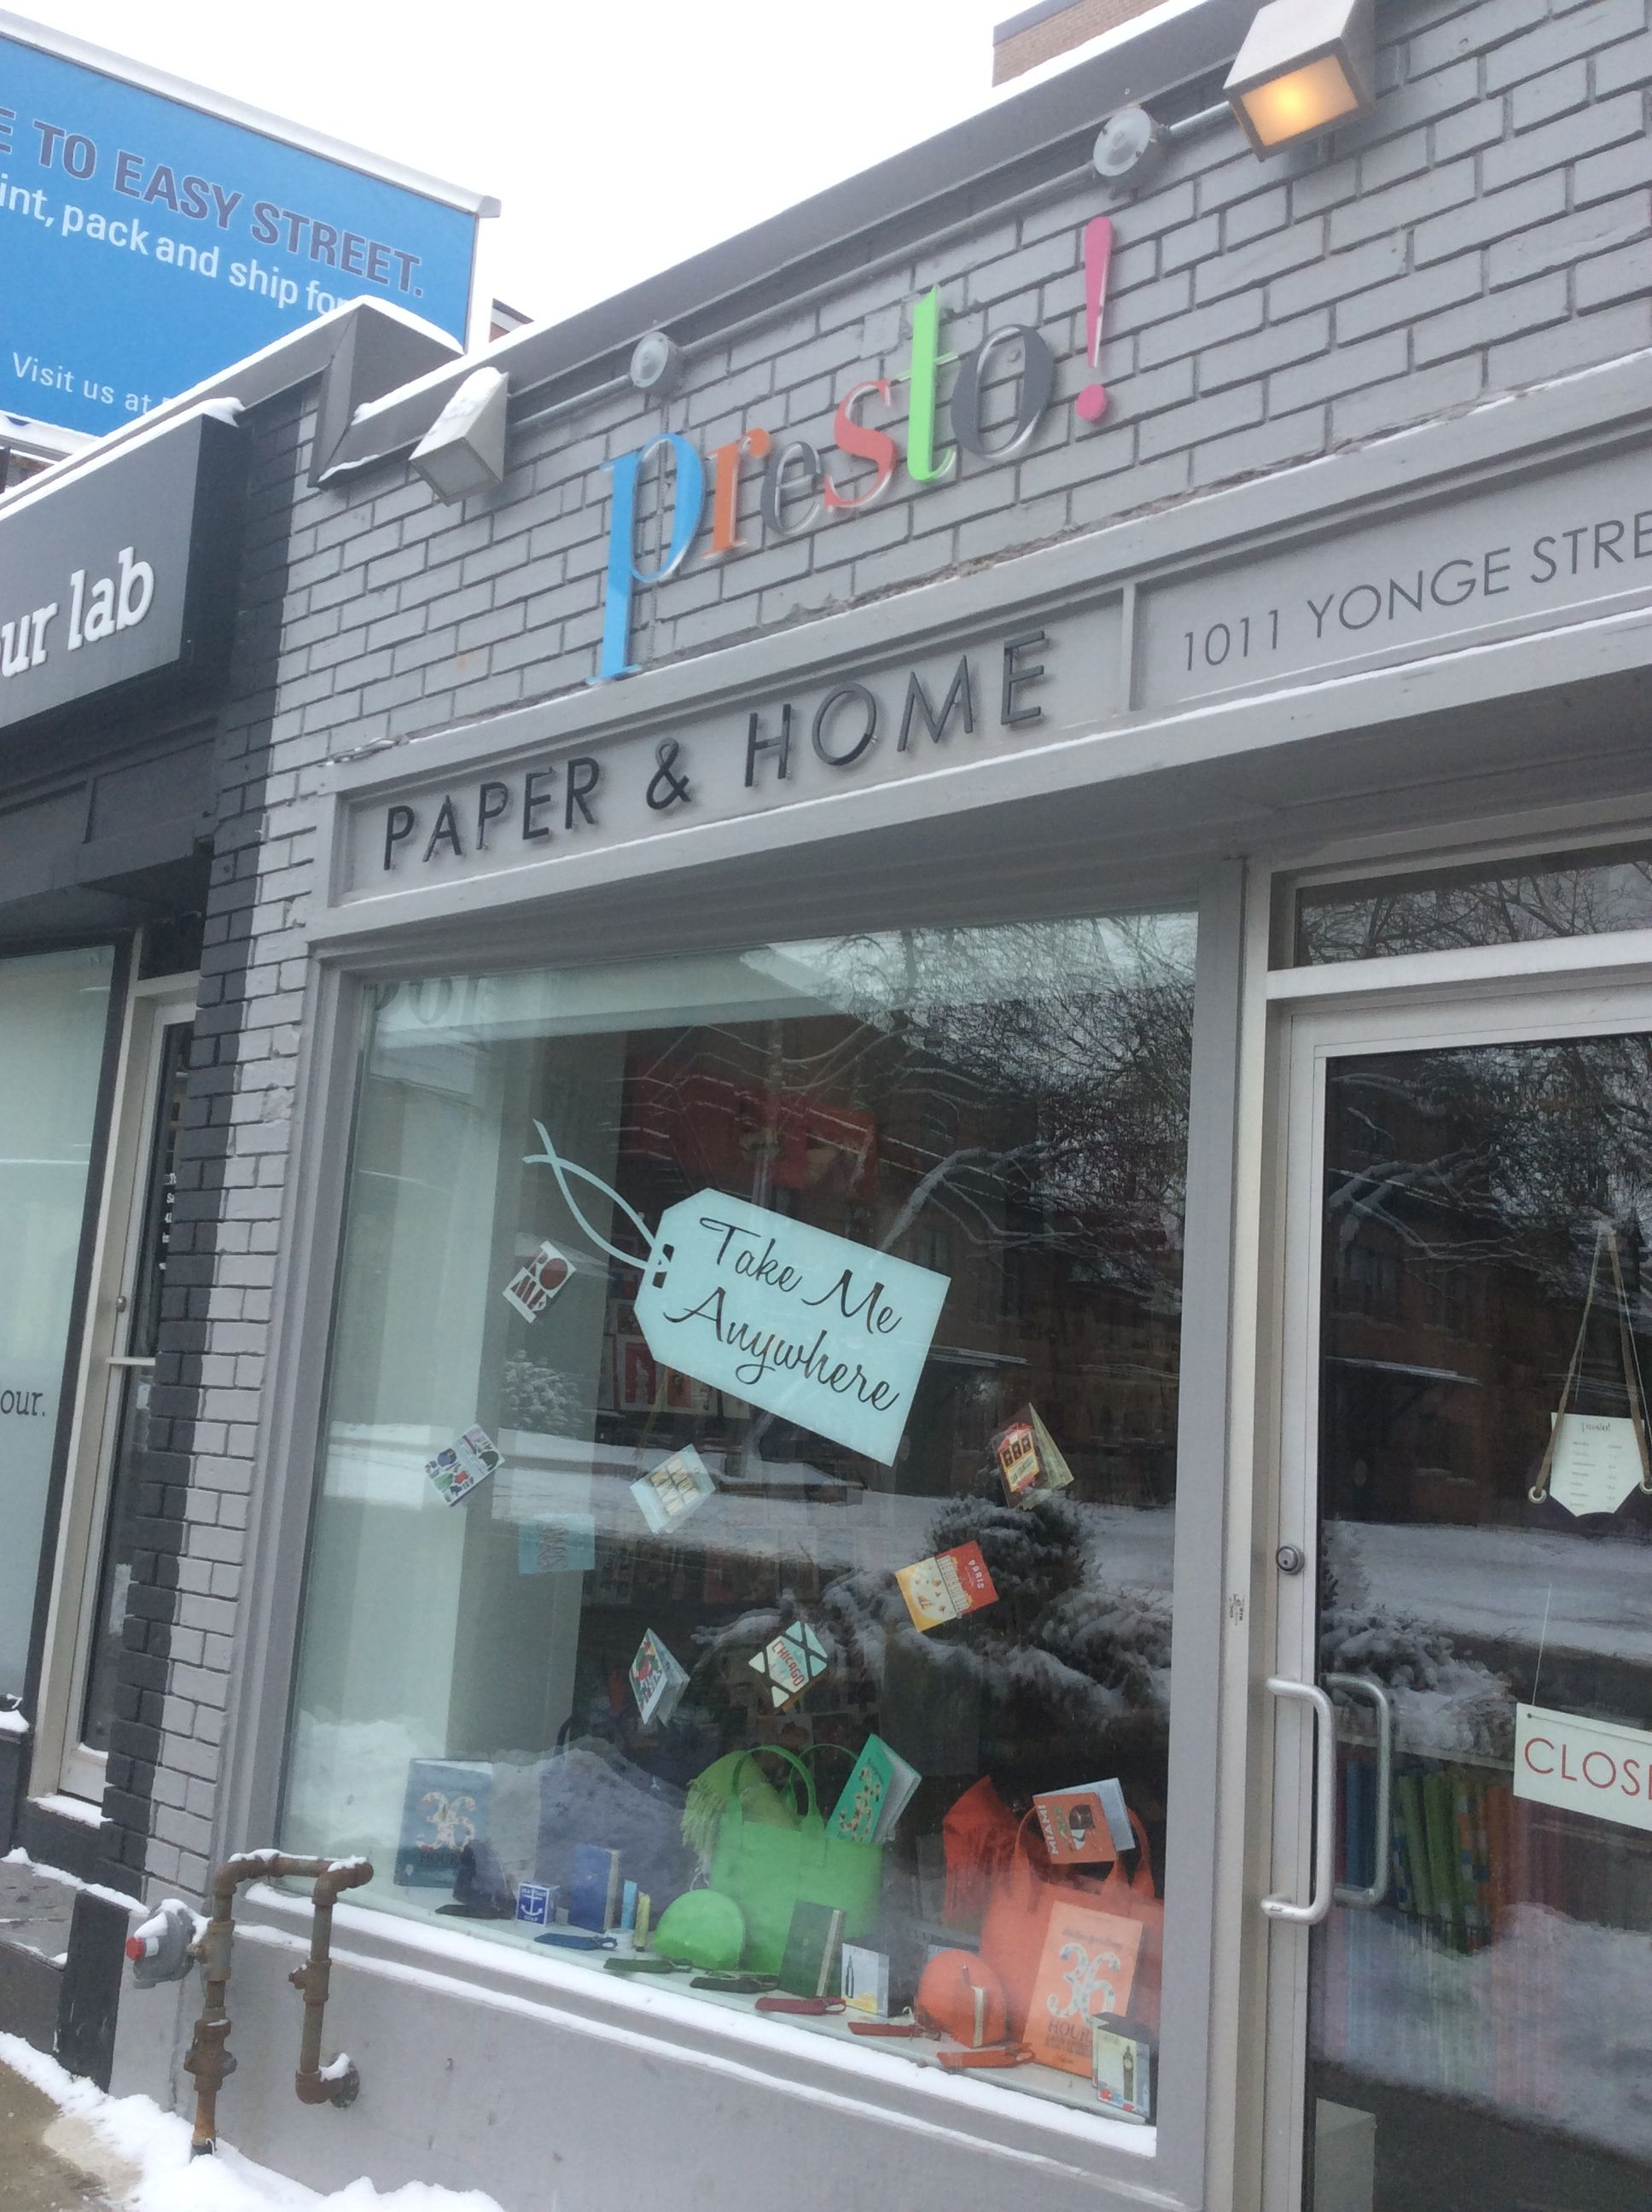 This cute store sells paper as in greetingcards